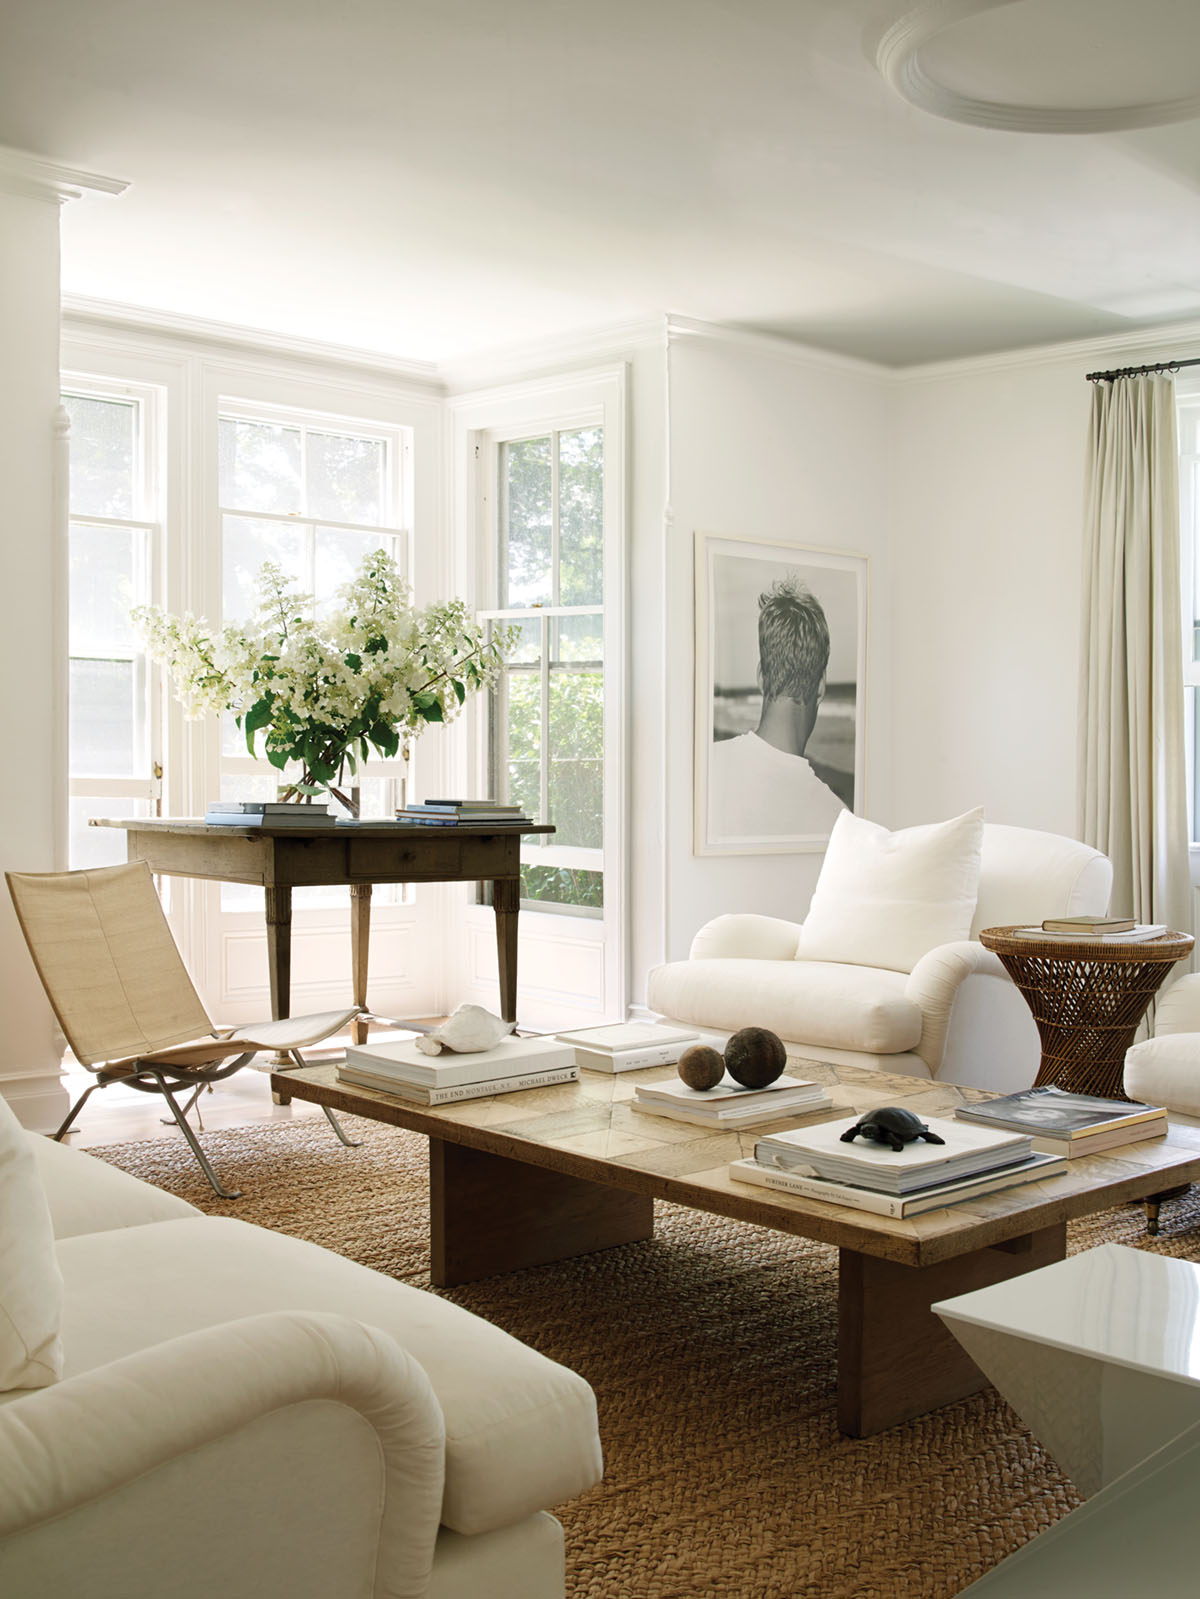 a mix of midcentury and antique furniture in a white and neutral living room decorated by Mona Nerenberg. A large garden-style arrangement of white blooms adorns an antique wood table placed in a nook created by a bay window